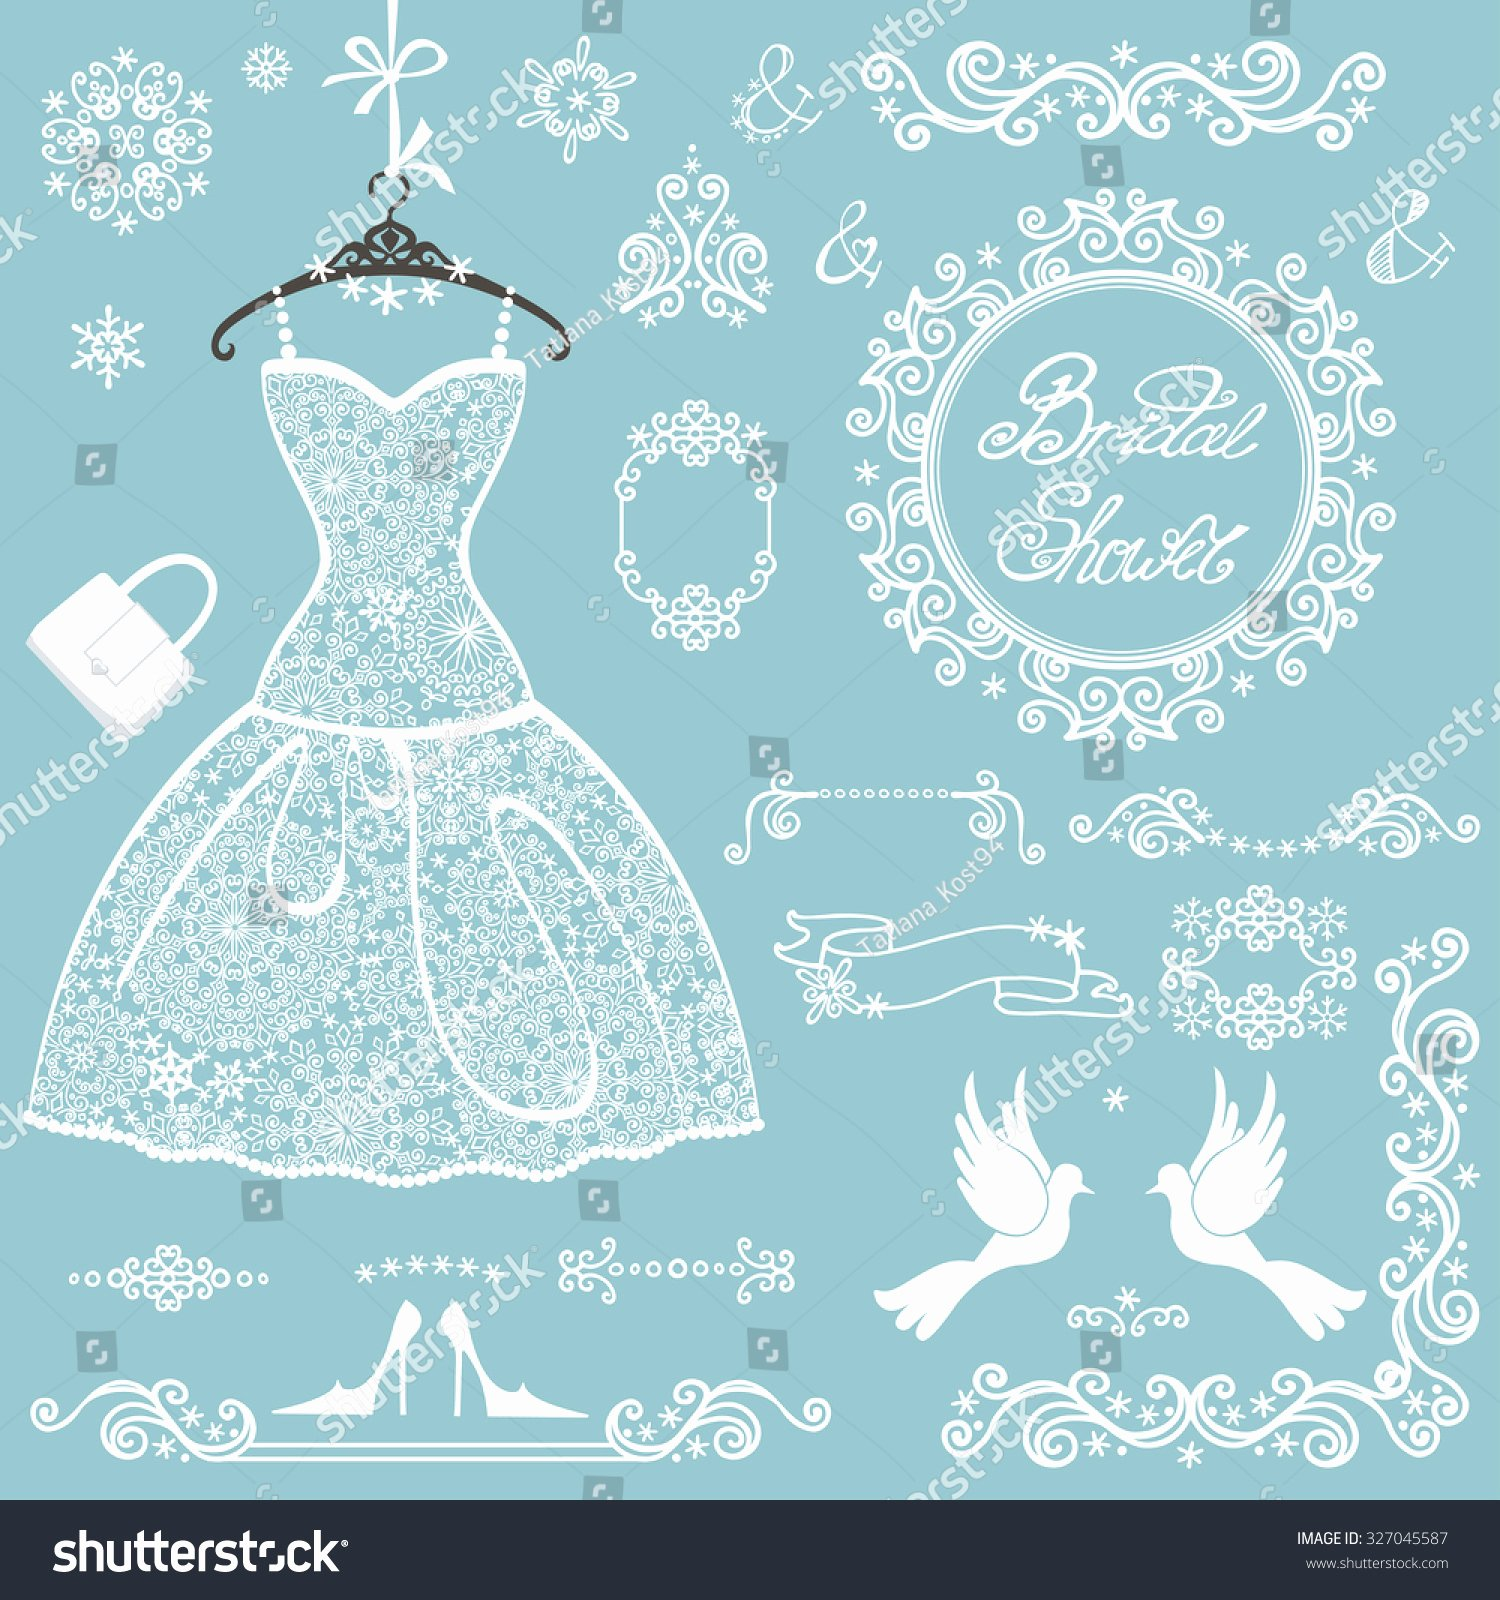 Wedding Dress Invitation Template Best Of Bridal Shower Decor Elements Setwinter Invitation Stock